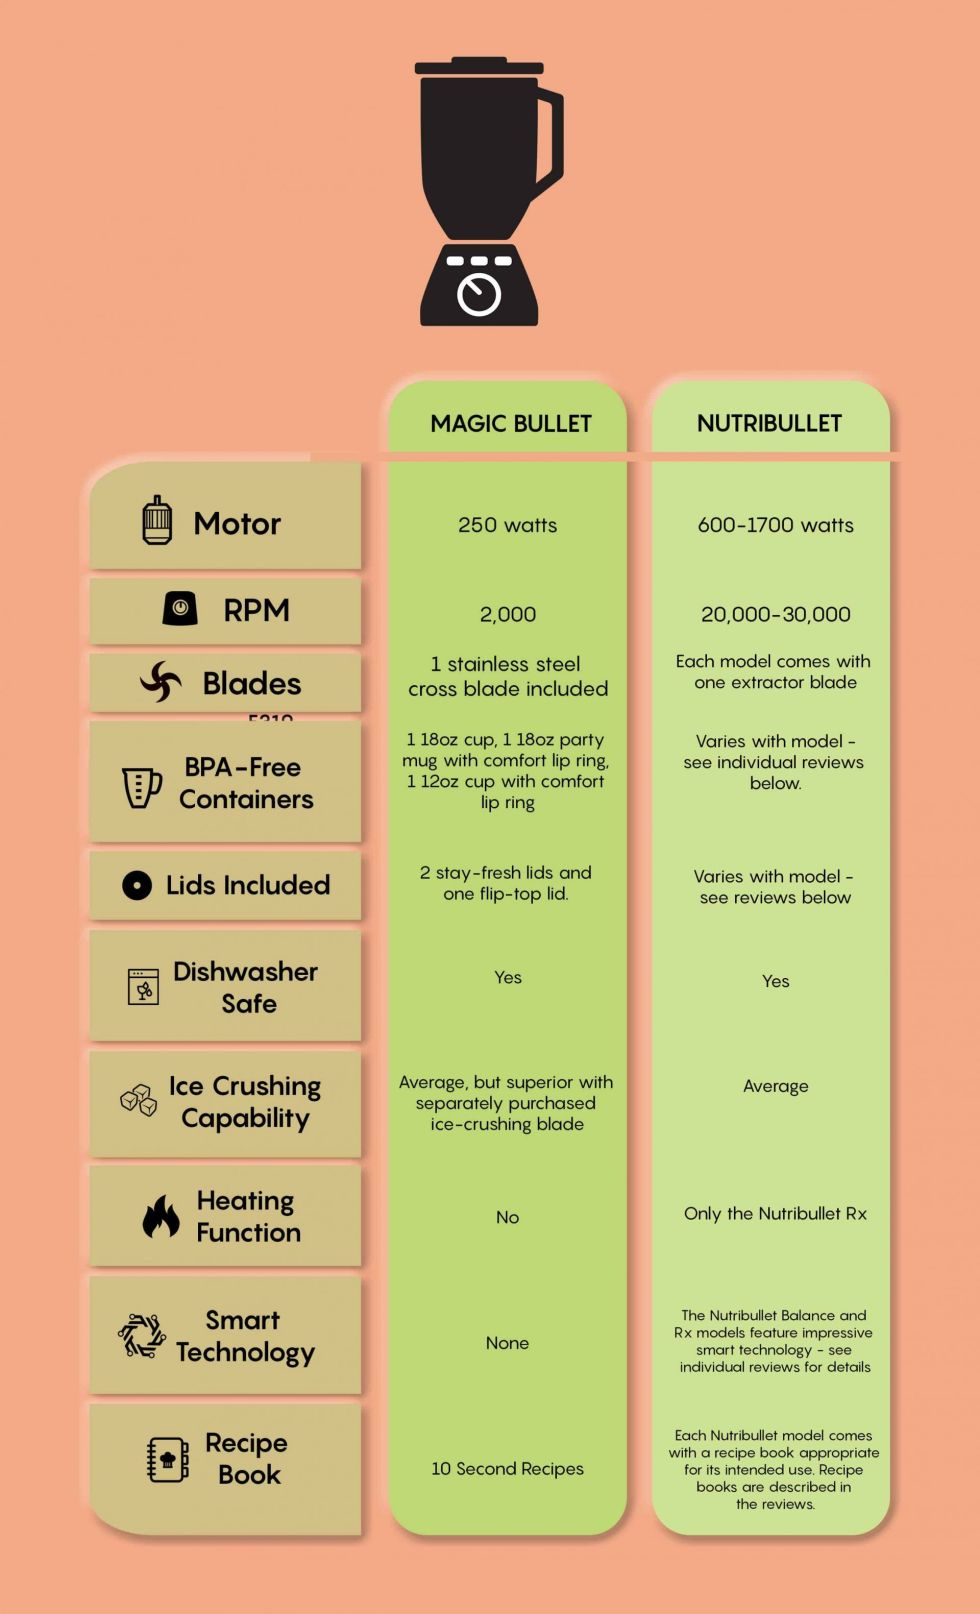 Magic Bullet vs Nutribullet Infographic